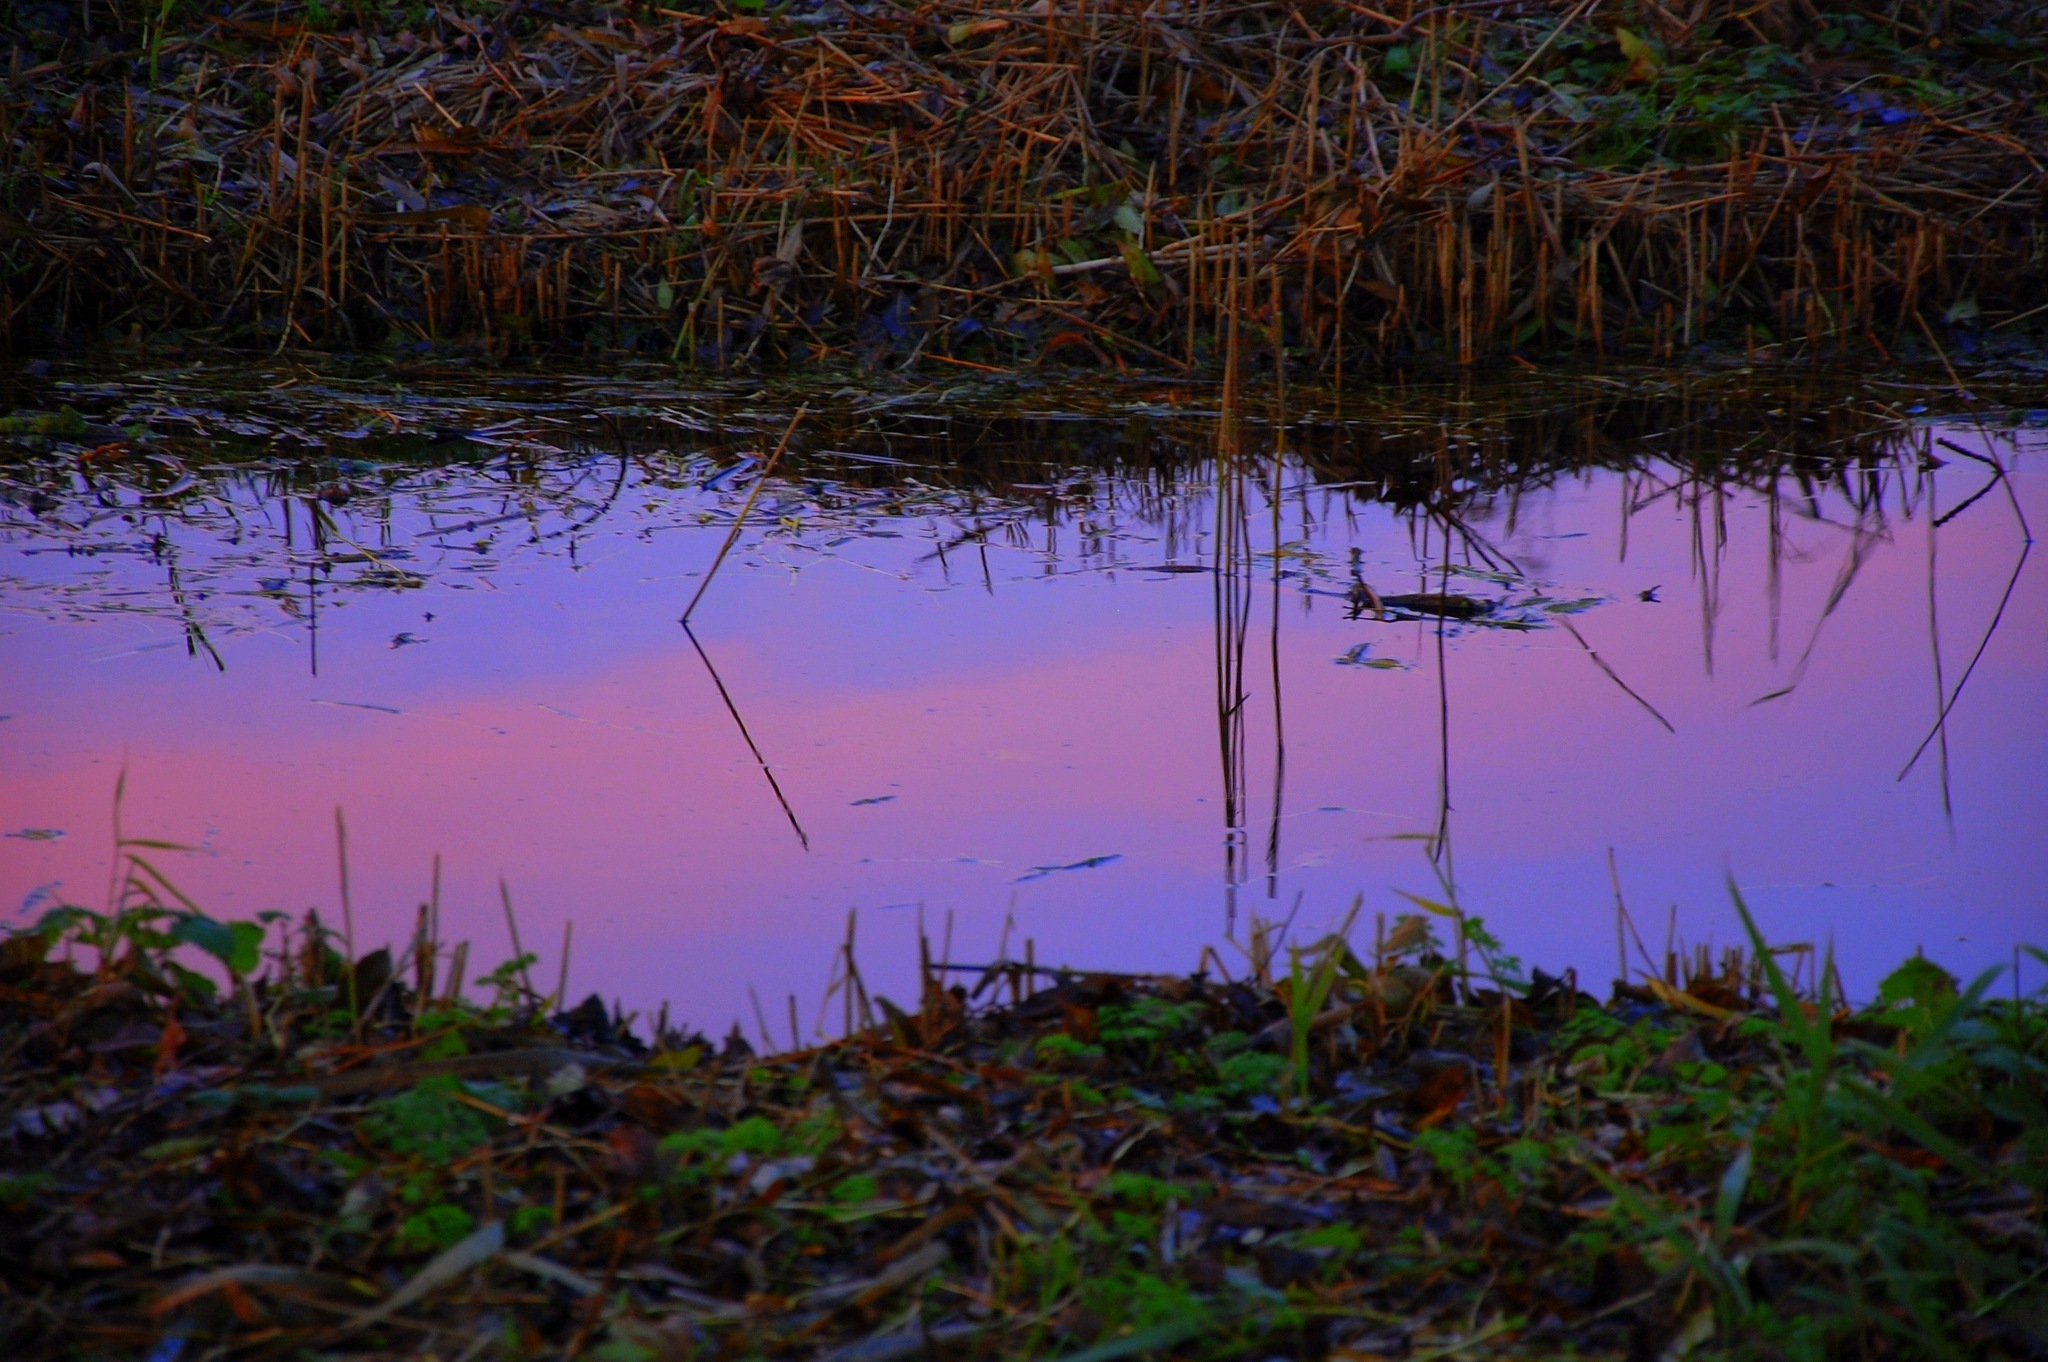 Pink Clouds On The Water by goga.dt